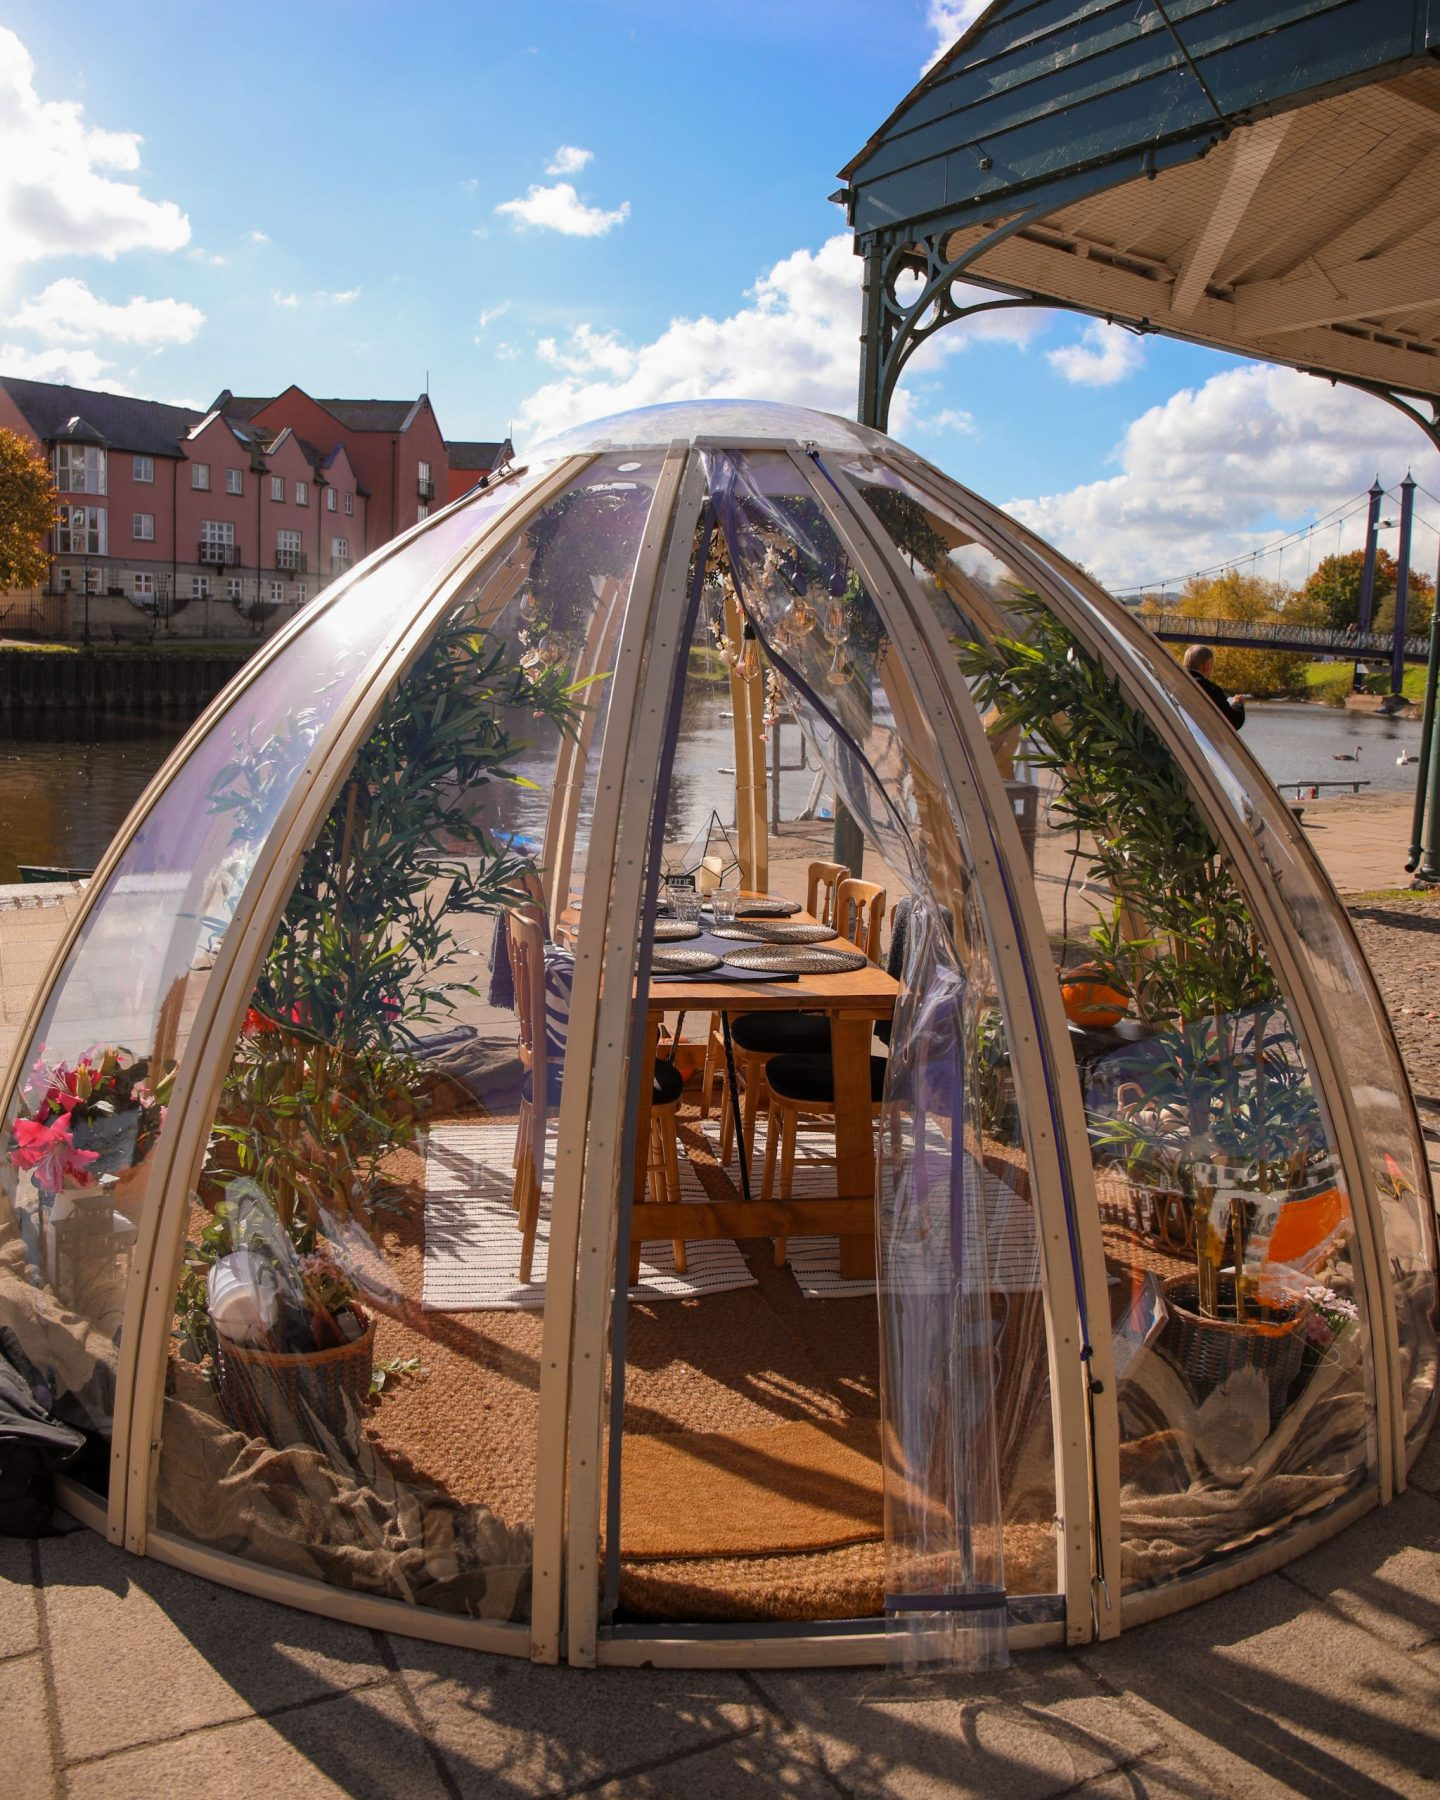 Mango's and On The Waterfront Dining Pod, The Quay, Exeter, Devon, Katie Heath KALANCHOE